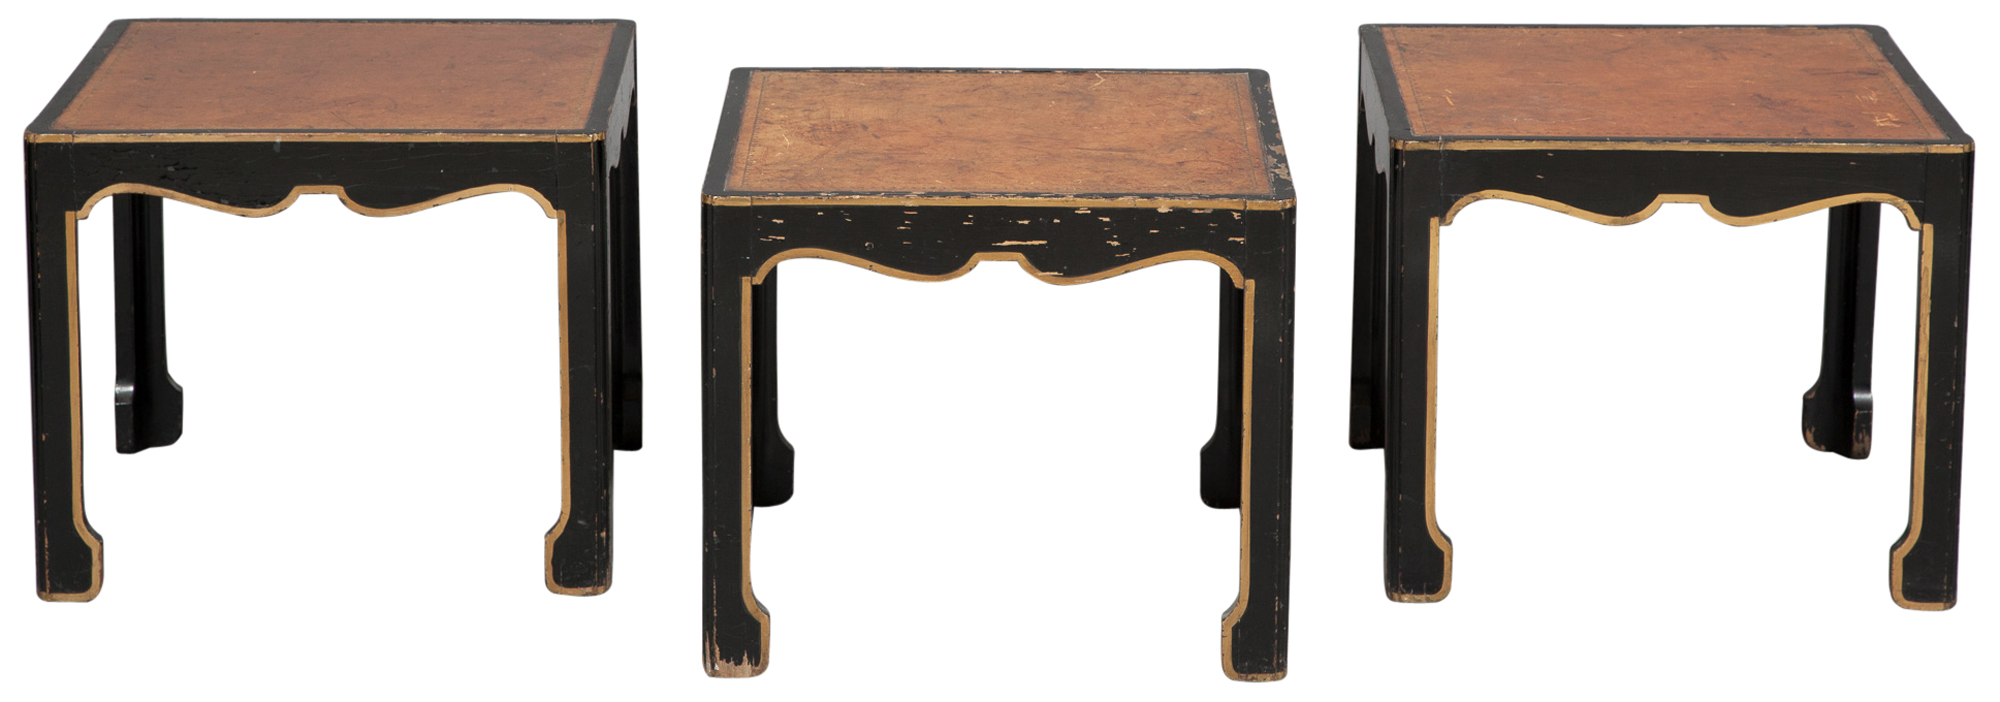 Lot image - Set of Three Asian Style Black and Gilt-Painted Faux-Leather Inset Side Tables